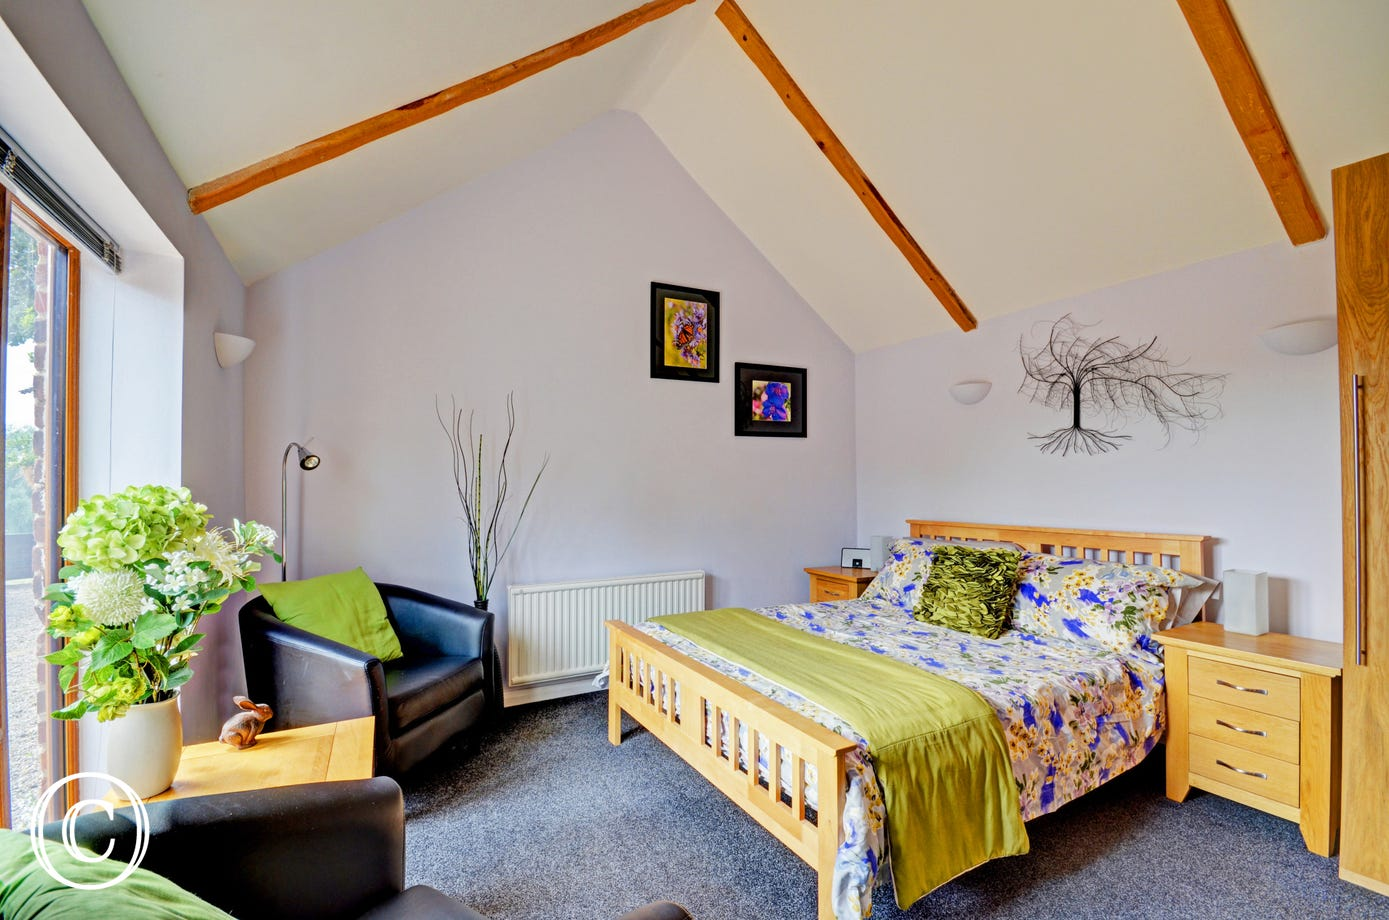 With a beautifully dressed double bed, this is perfect for 2